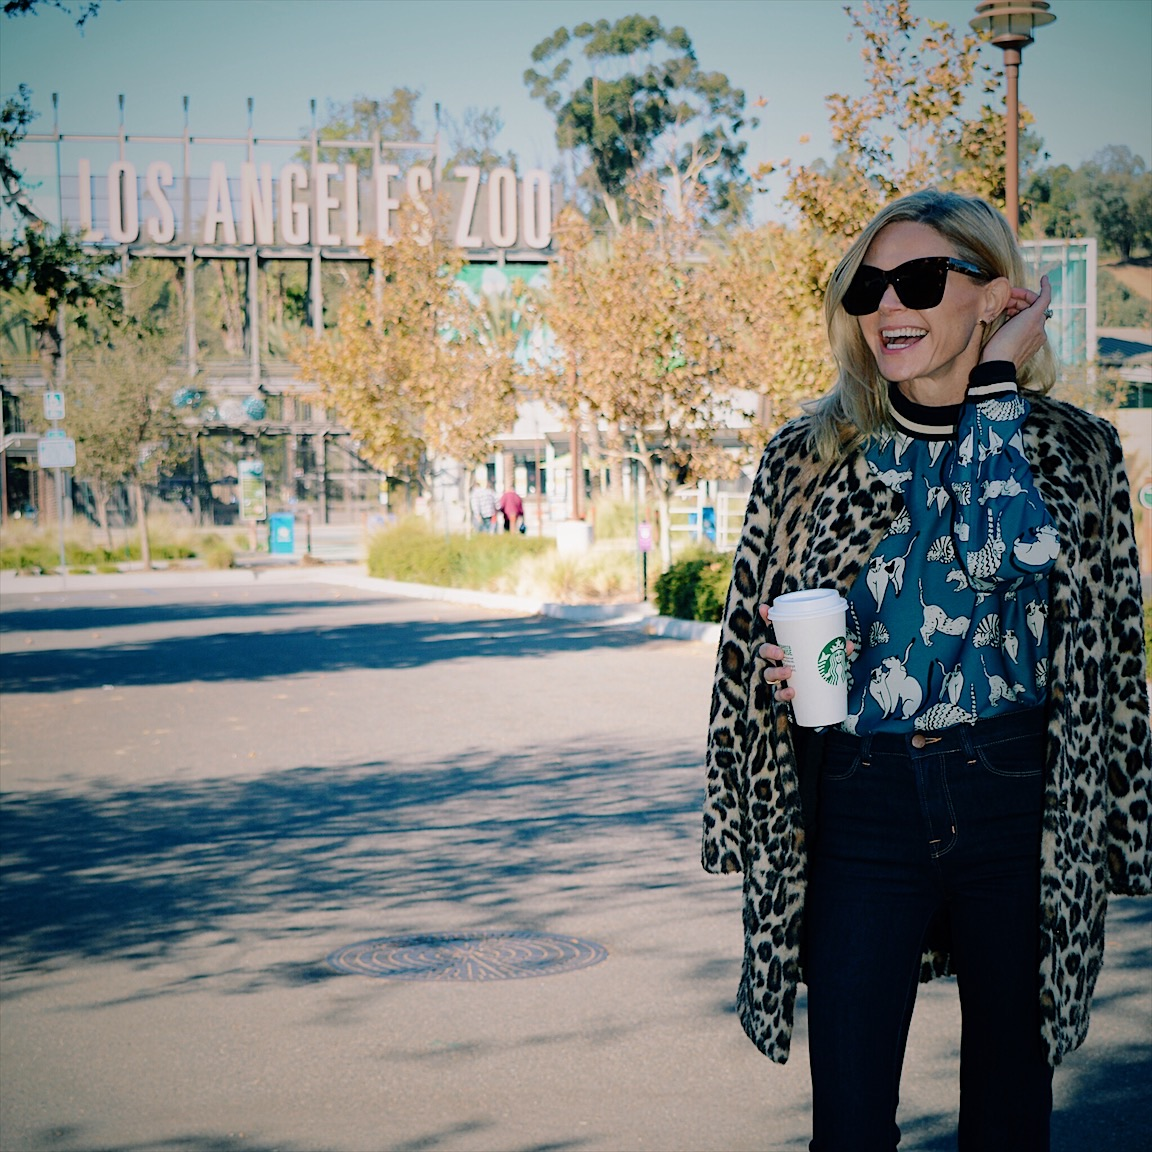 Mixing Prints: Printed Blouse + High-Rise Jeans + Leopard Coat Outfit